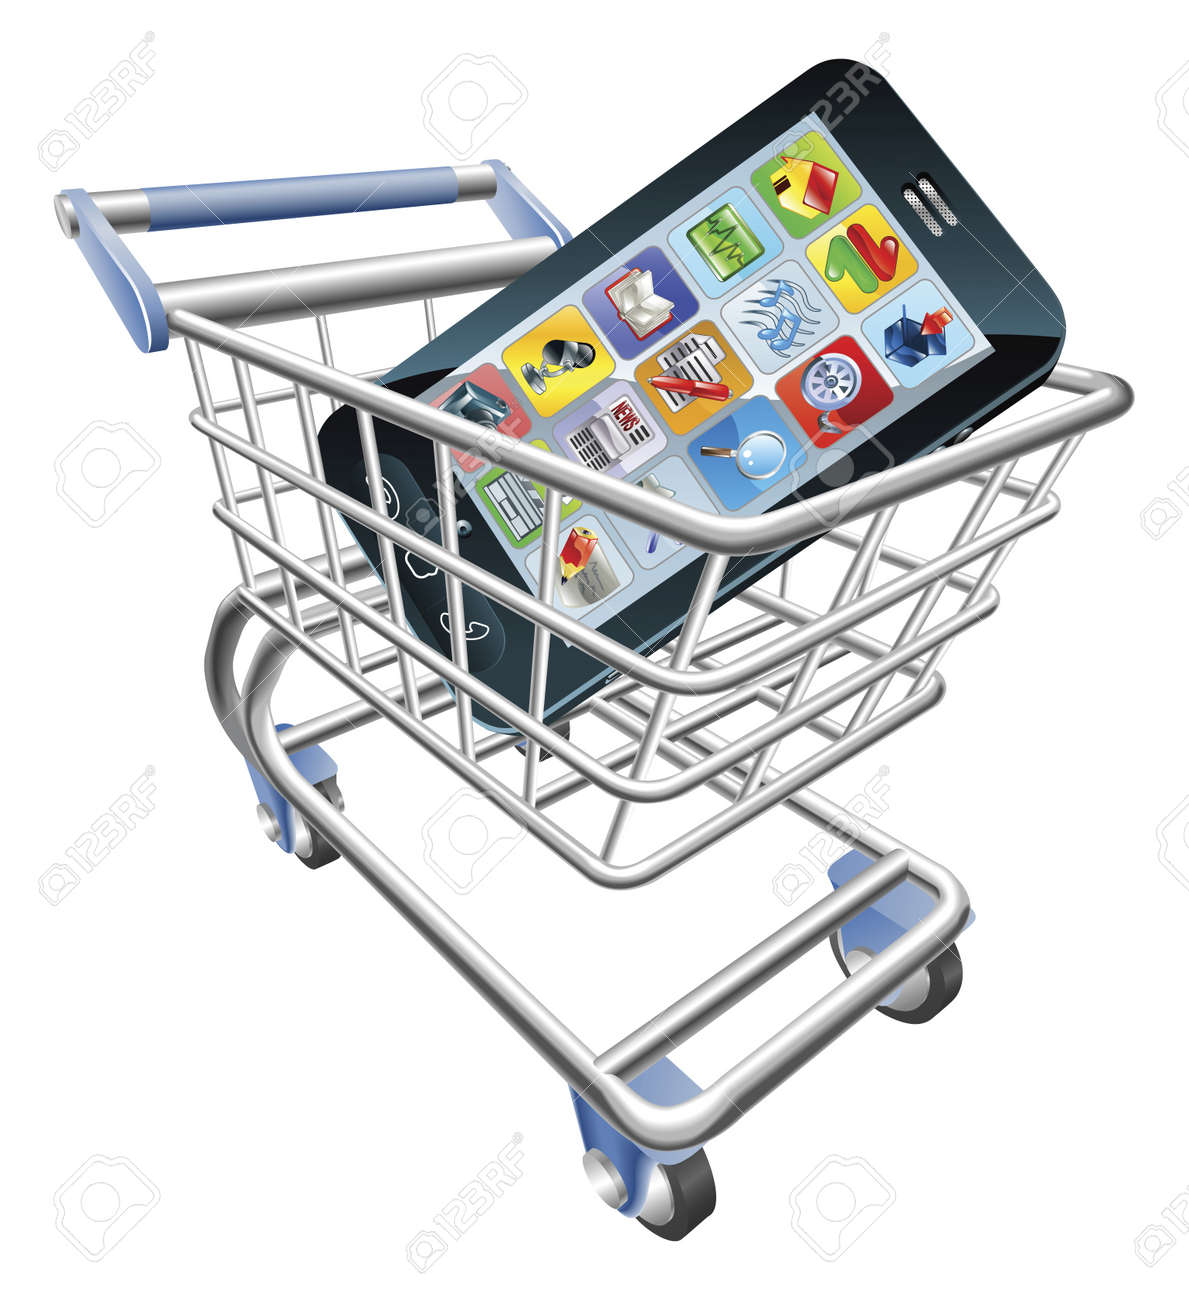 An illustration of a shopping cart trolley with smart phone mobile phone - 9851569